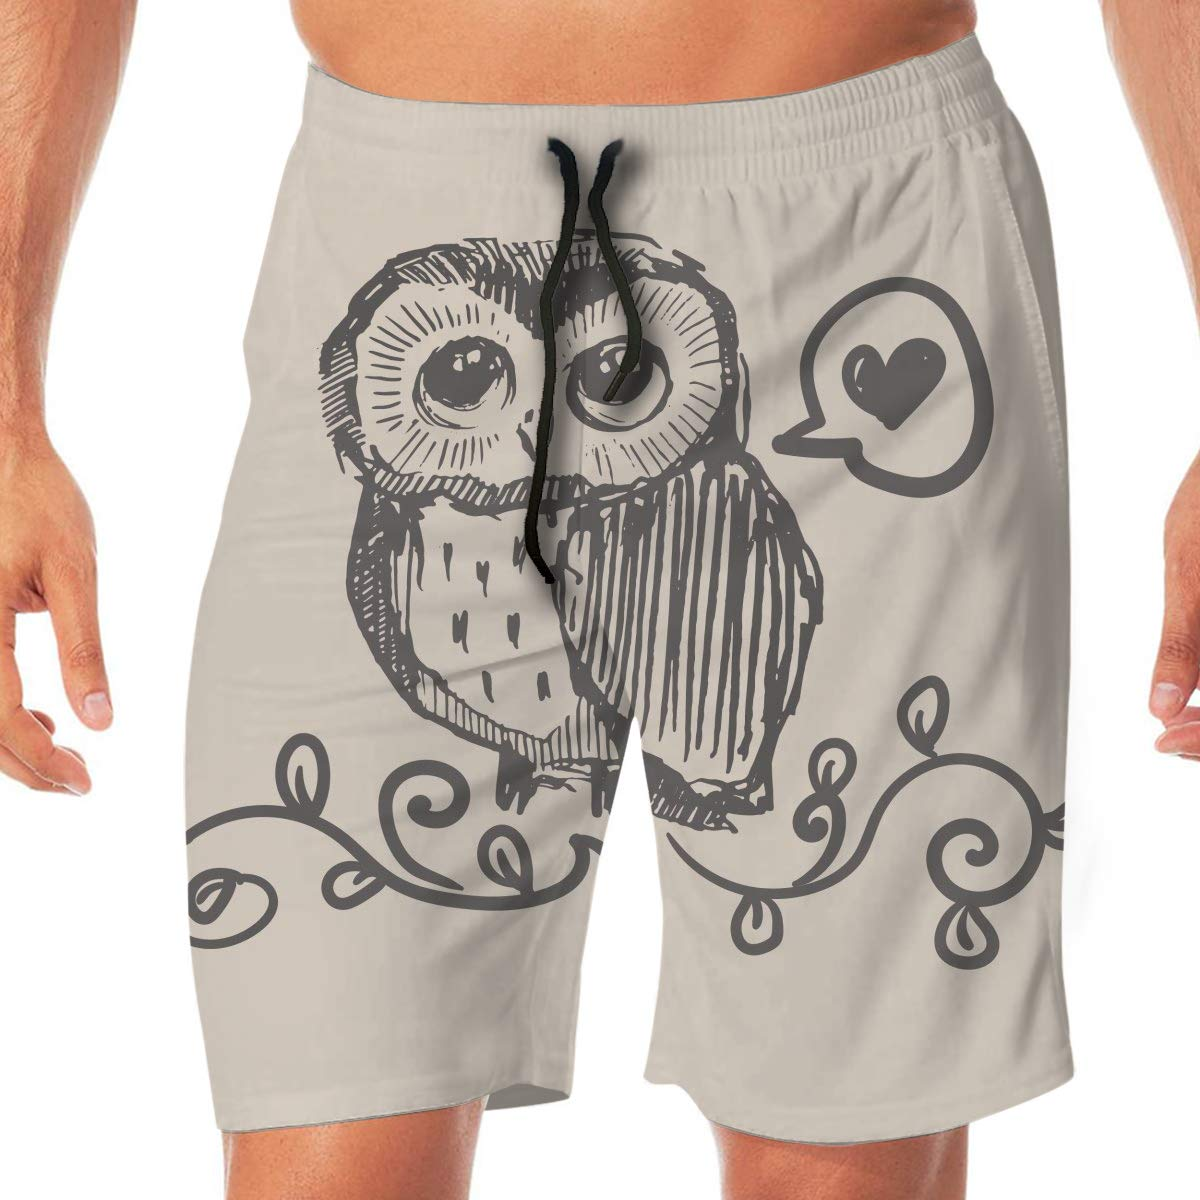 Mens Swim Trunks Quick Dry Owl Love Grass Shy Beach Board Shorts Swimming Short with Pockets